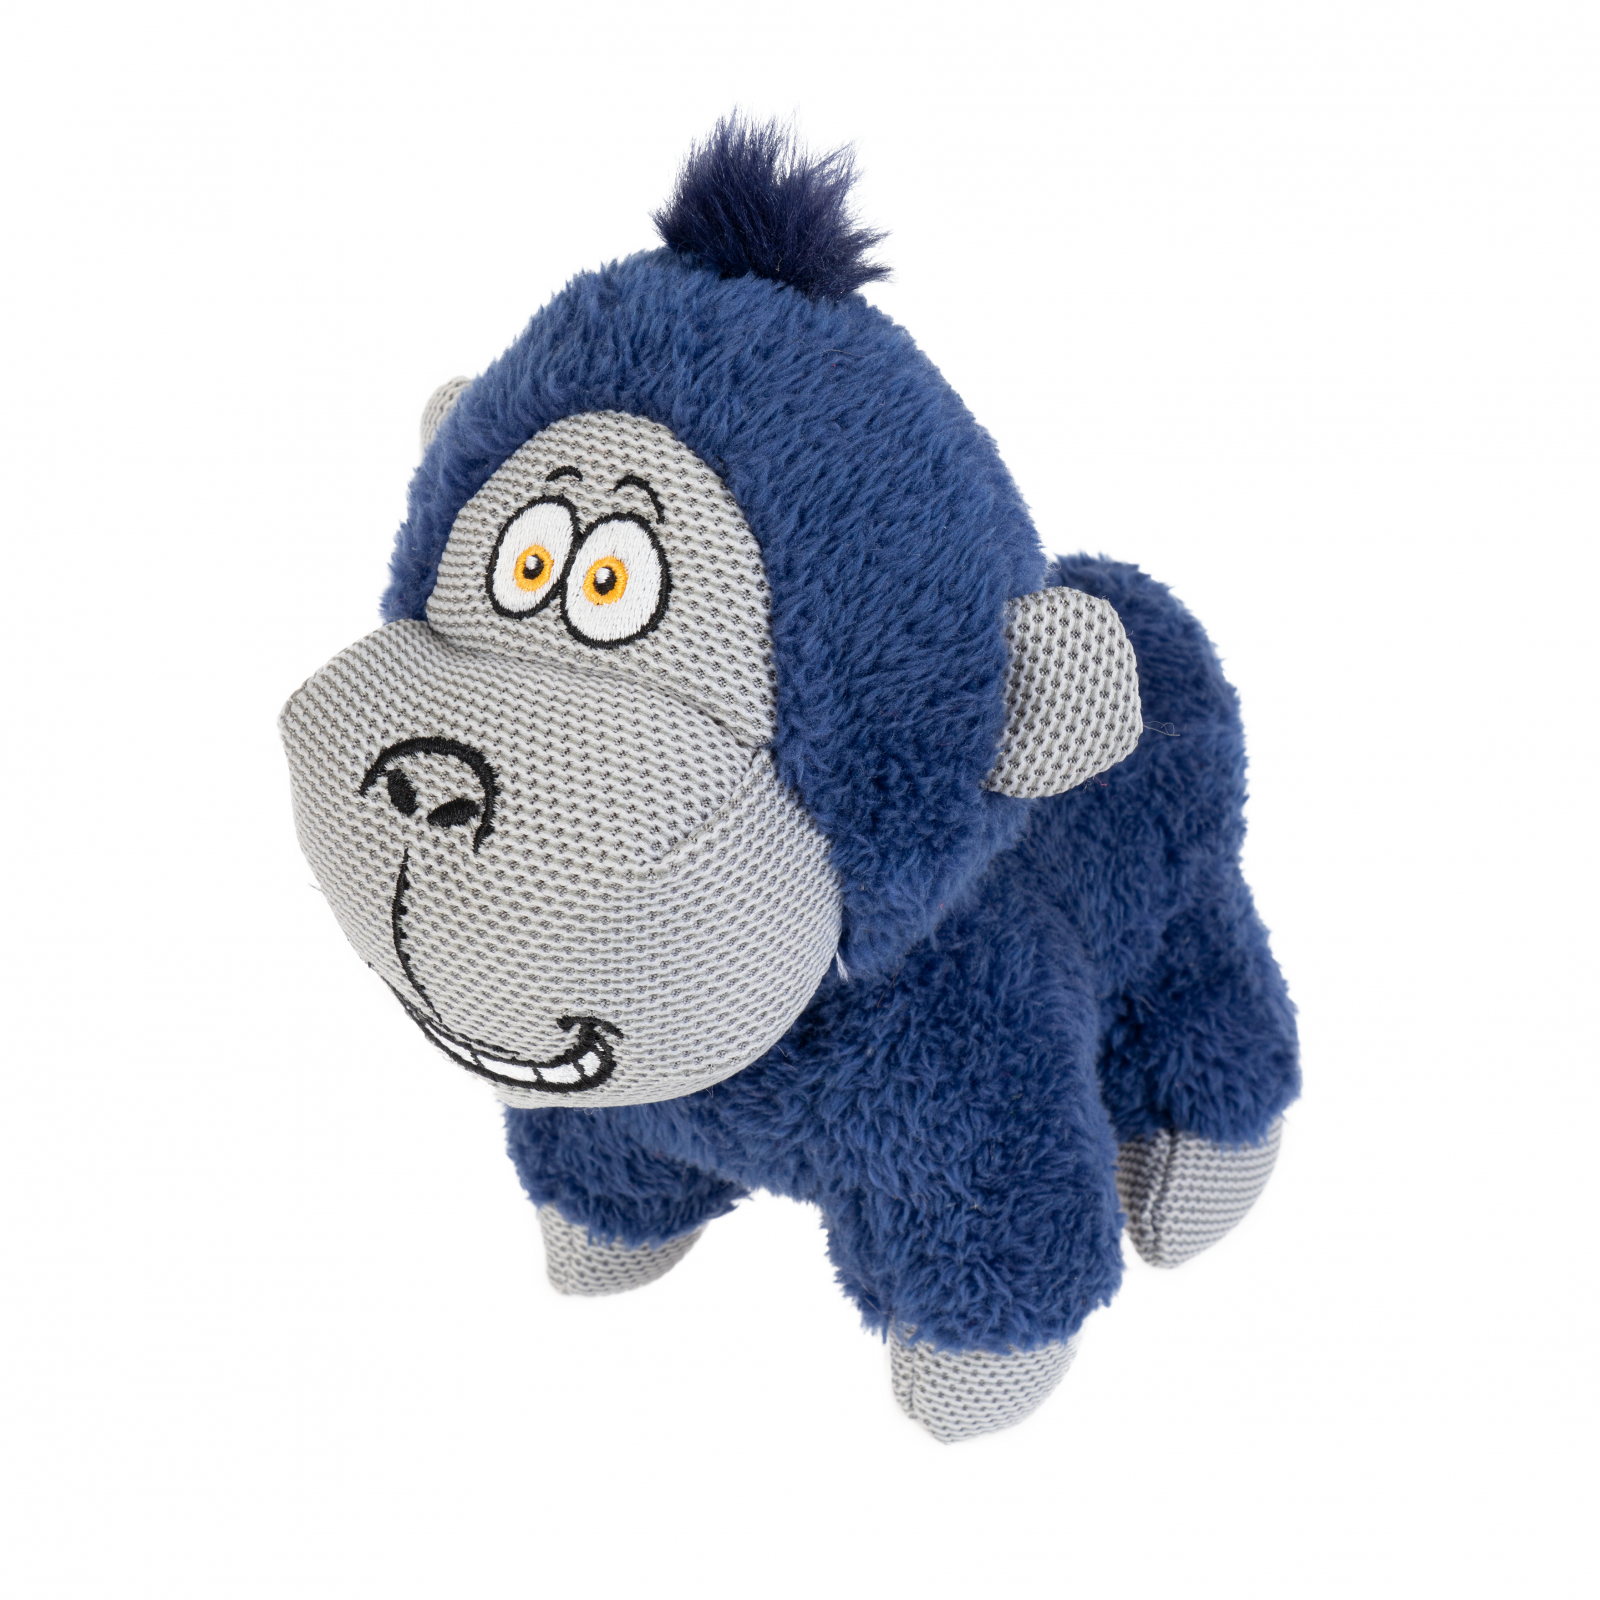 Yours Droolly Yours Droolly Cuddlies Gorilla Small